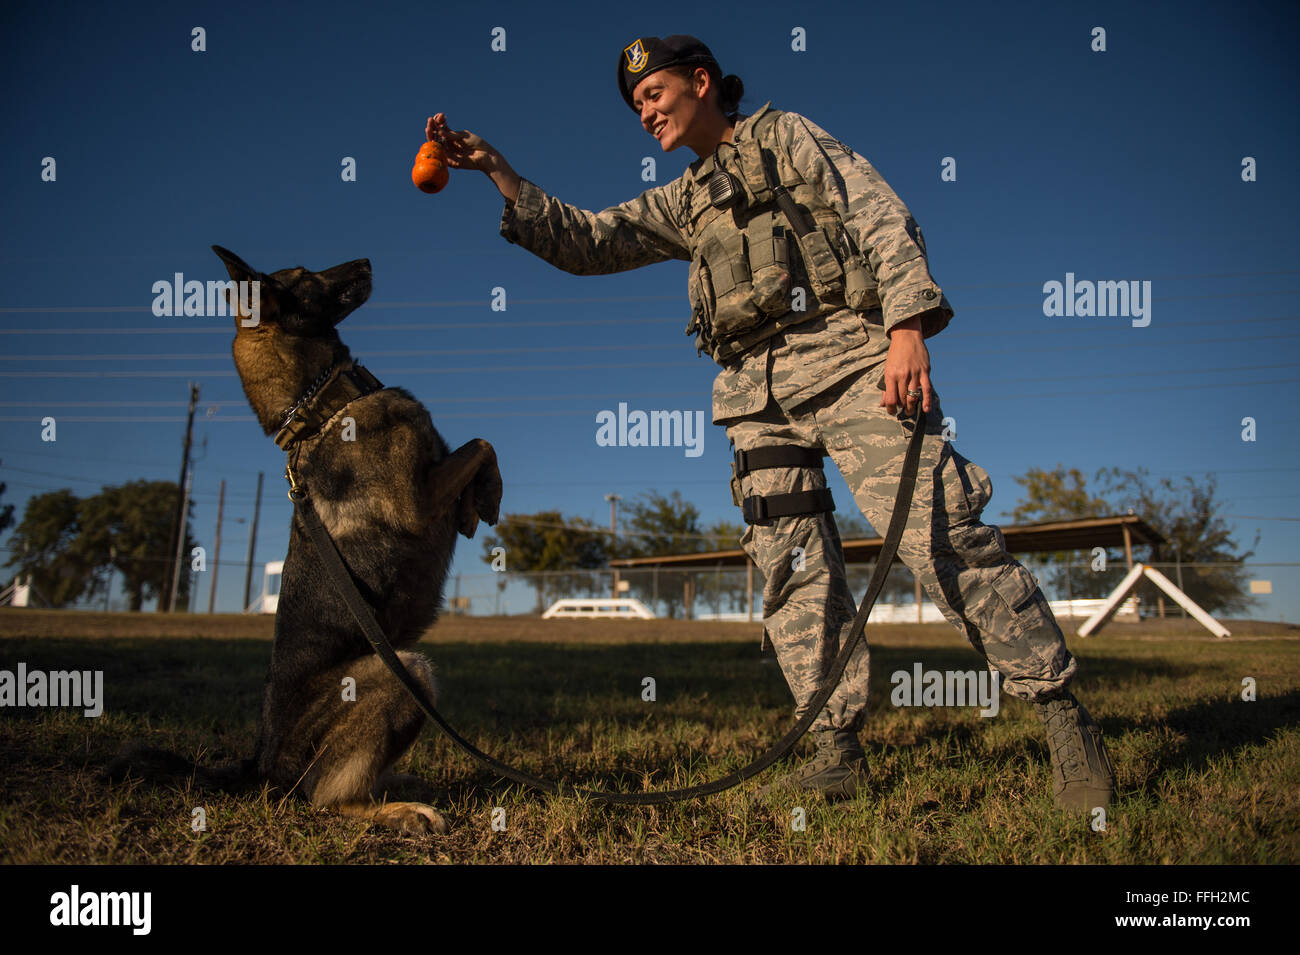 Senior Airman Chelsea LaFever gestures for ZZusa to 'sit pretty' during training at Joint Base San Antonio - Stock Image